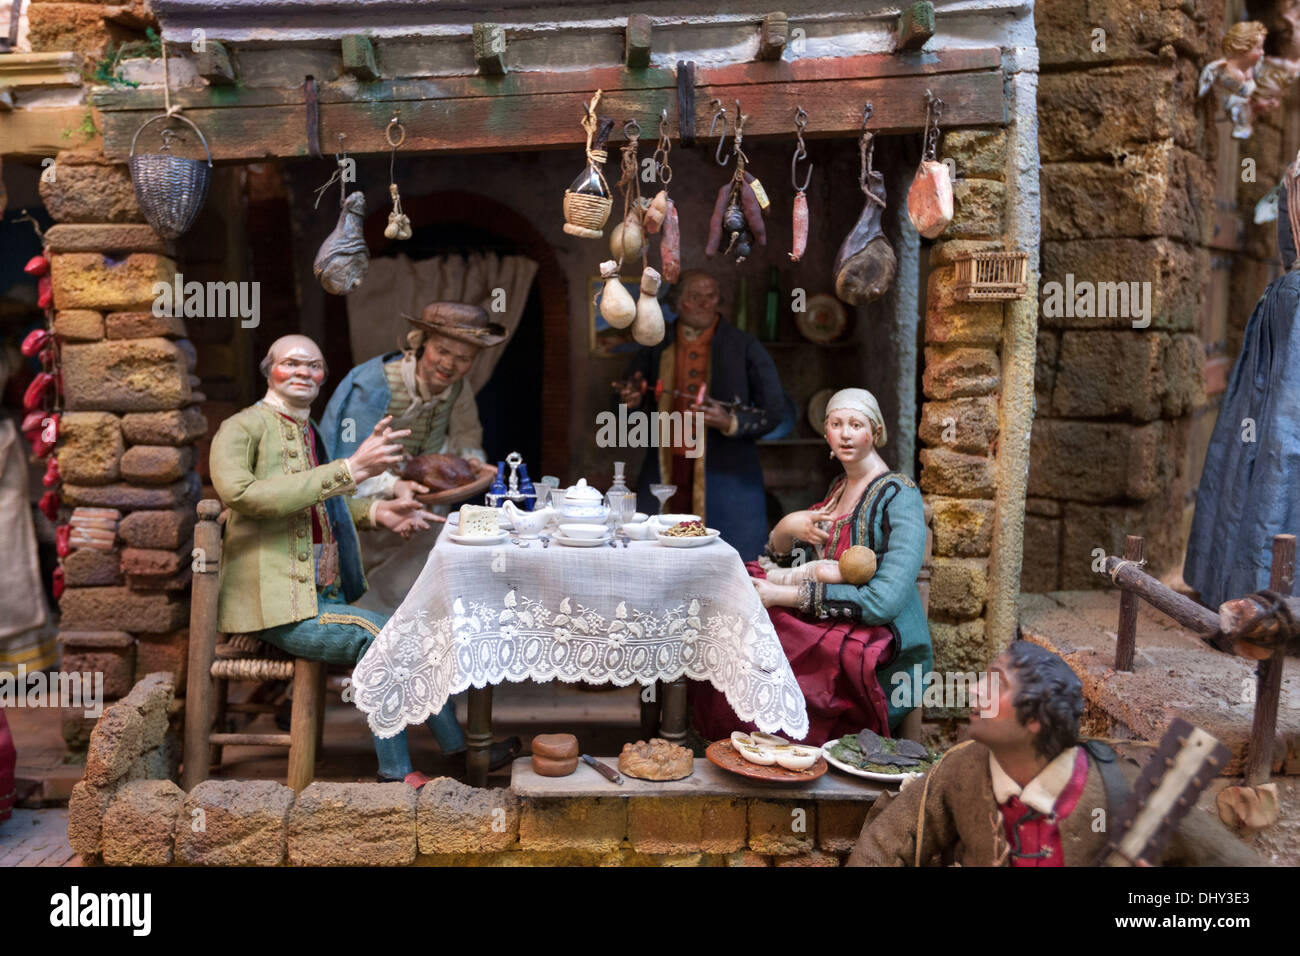 Neapolitan Baroque nativity scene, belén, in Cathedral of Valladolid  Museum, Spain. - Stock Image